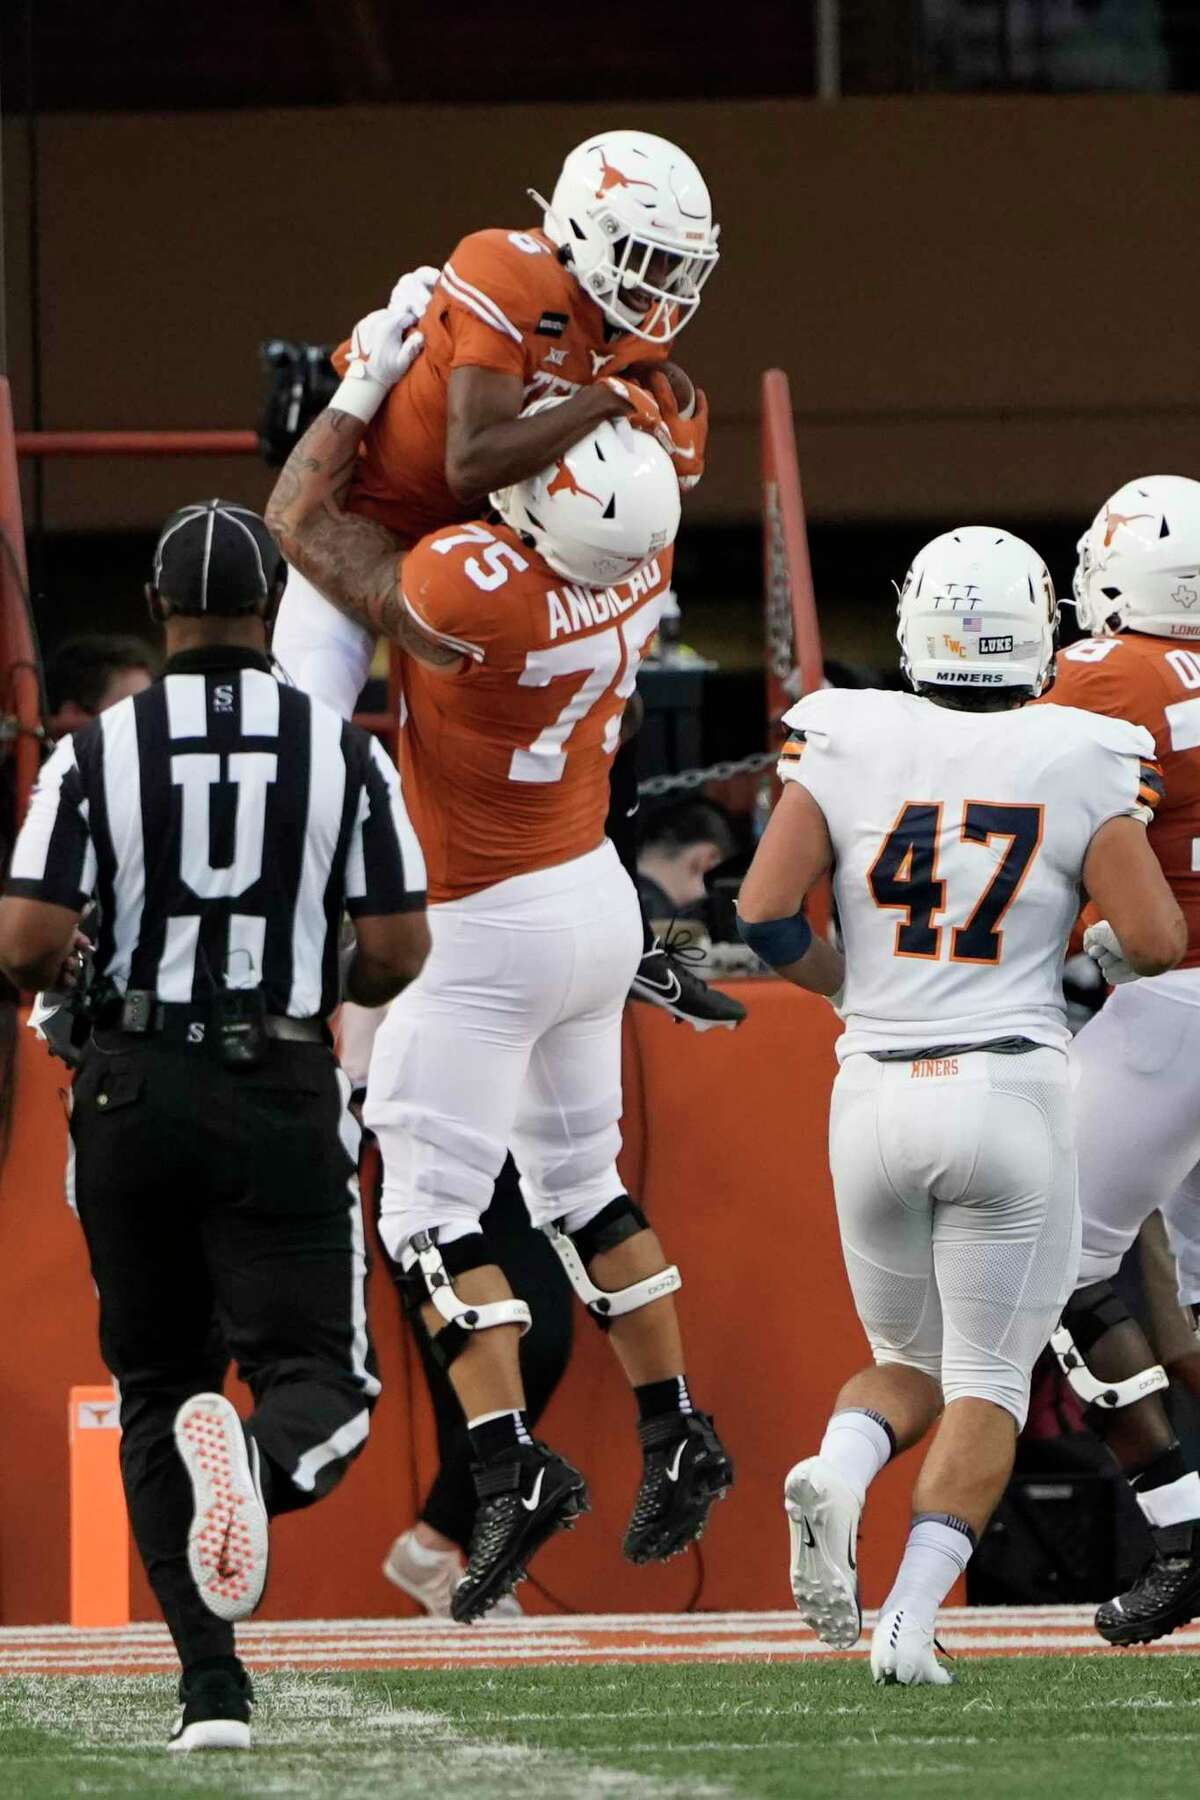 Texas' Joshua Moore (6) celebrates his touchdown catch against UTEP with Junior Angilau (75) during the first half of an NCAA college football game in Austin, Texas, Saturday, Sept. 12, 2020. (AP Photo/Chuck Burton)